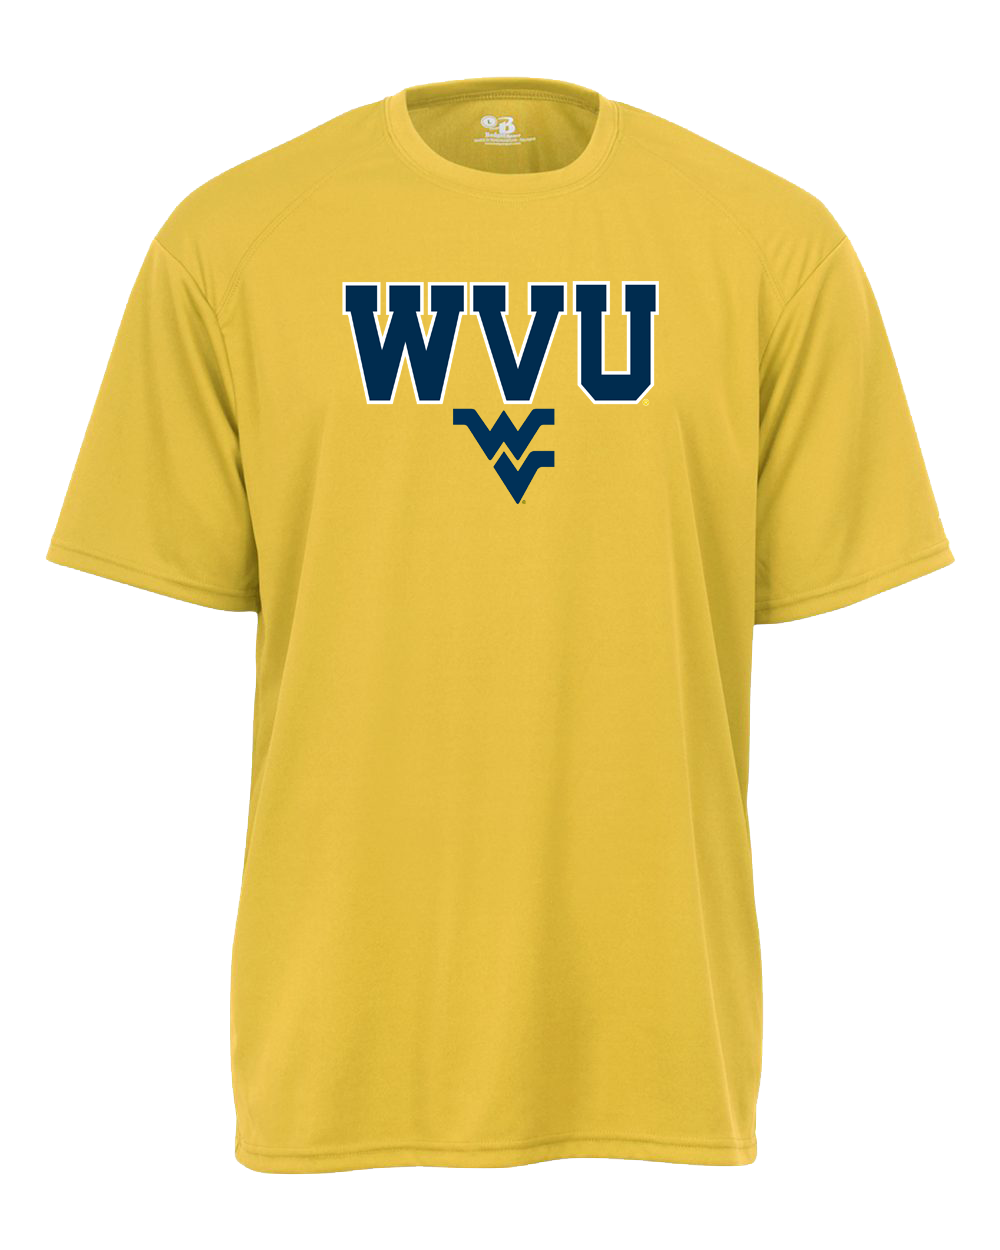 707125da4 Head out to the Gold Rush at Mountaineer Field, while staying cool and  comfortable in